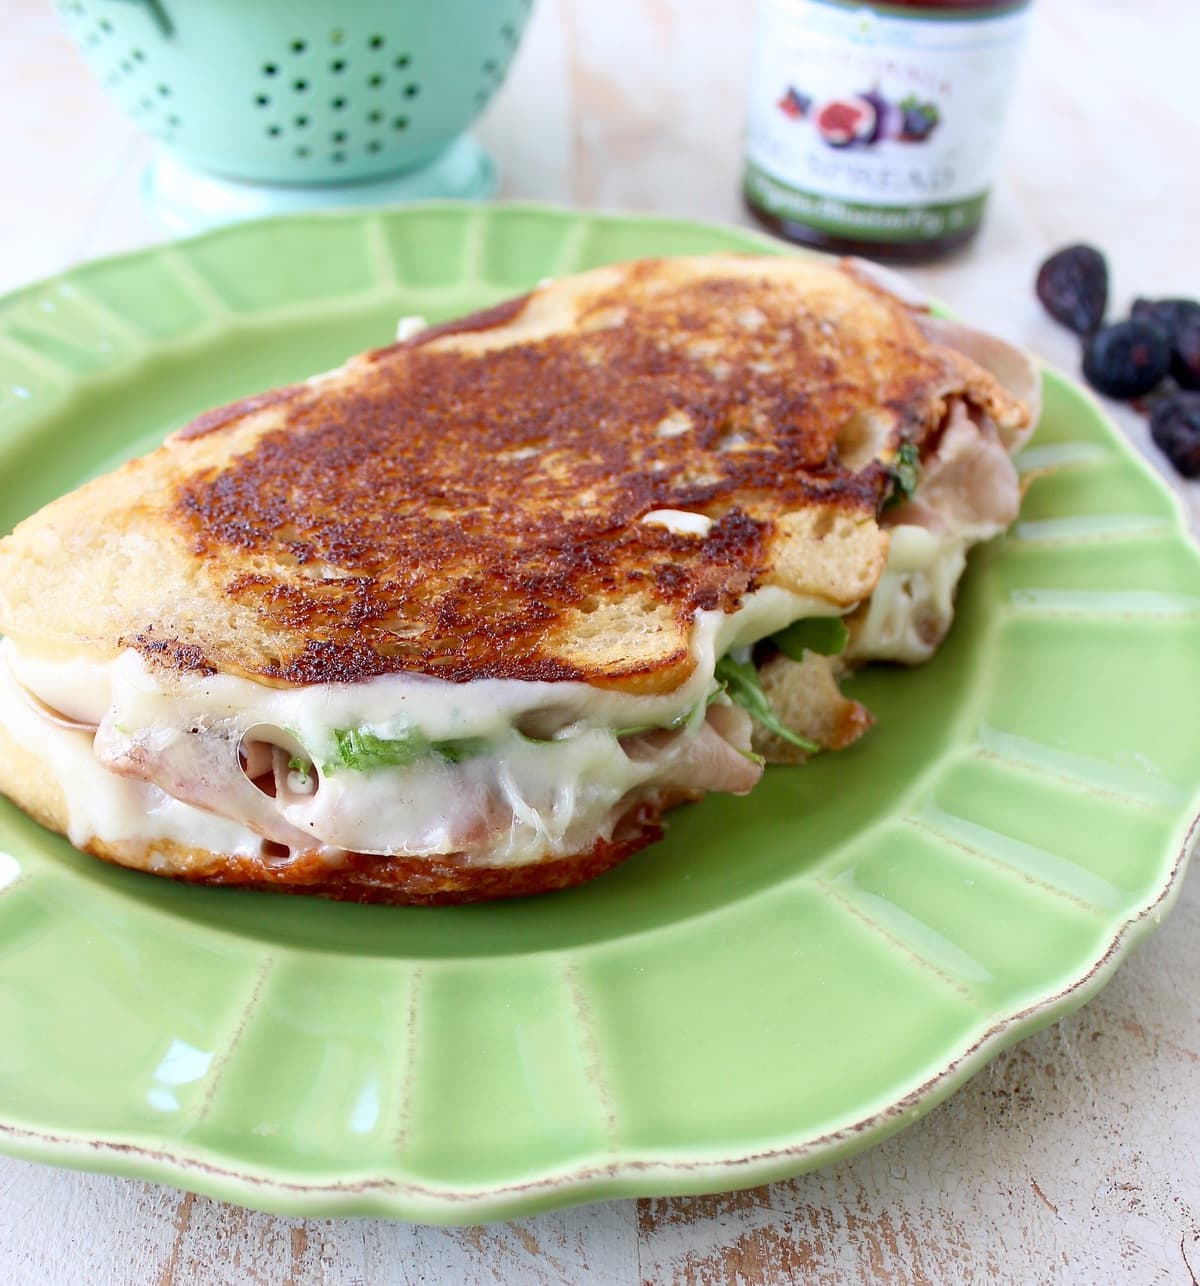 This Fig Grilled Cheese Sandwich recipe is filled with prosciutto, provolone, blue cheese, arugula & fig jam for a flavorful, delicious & filling sandwich!